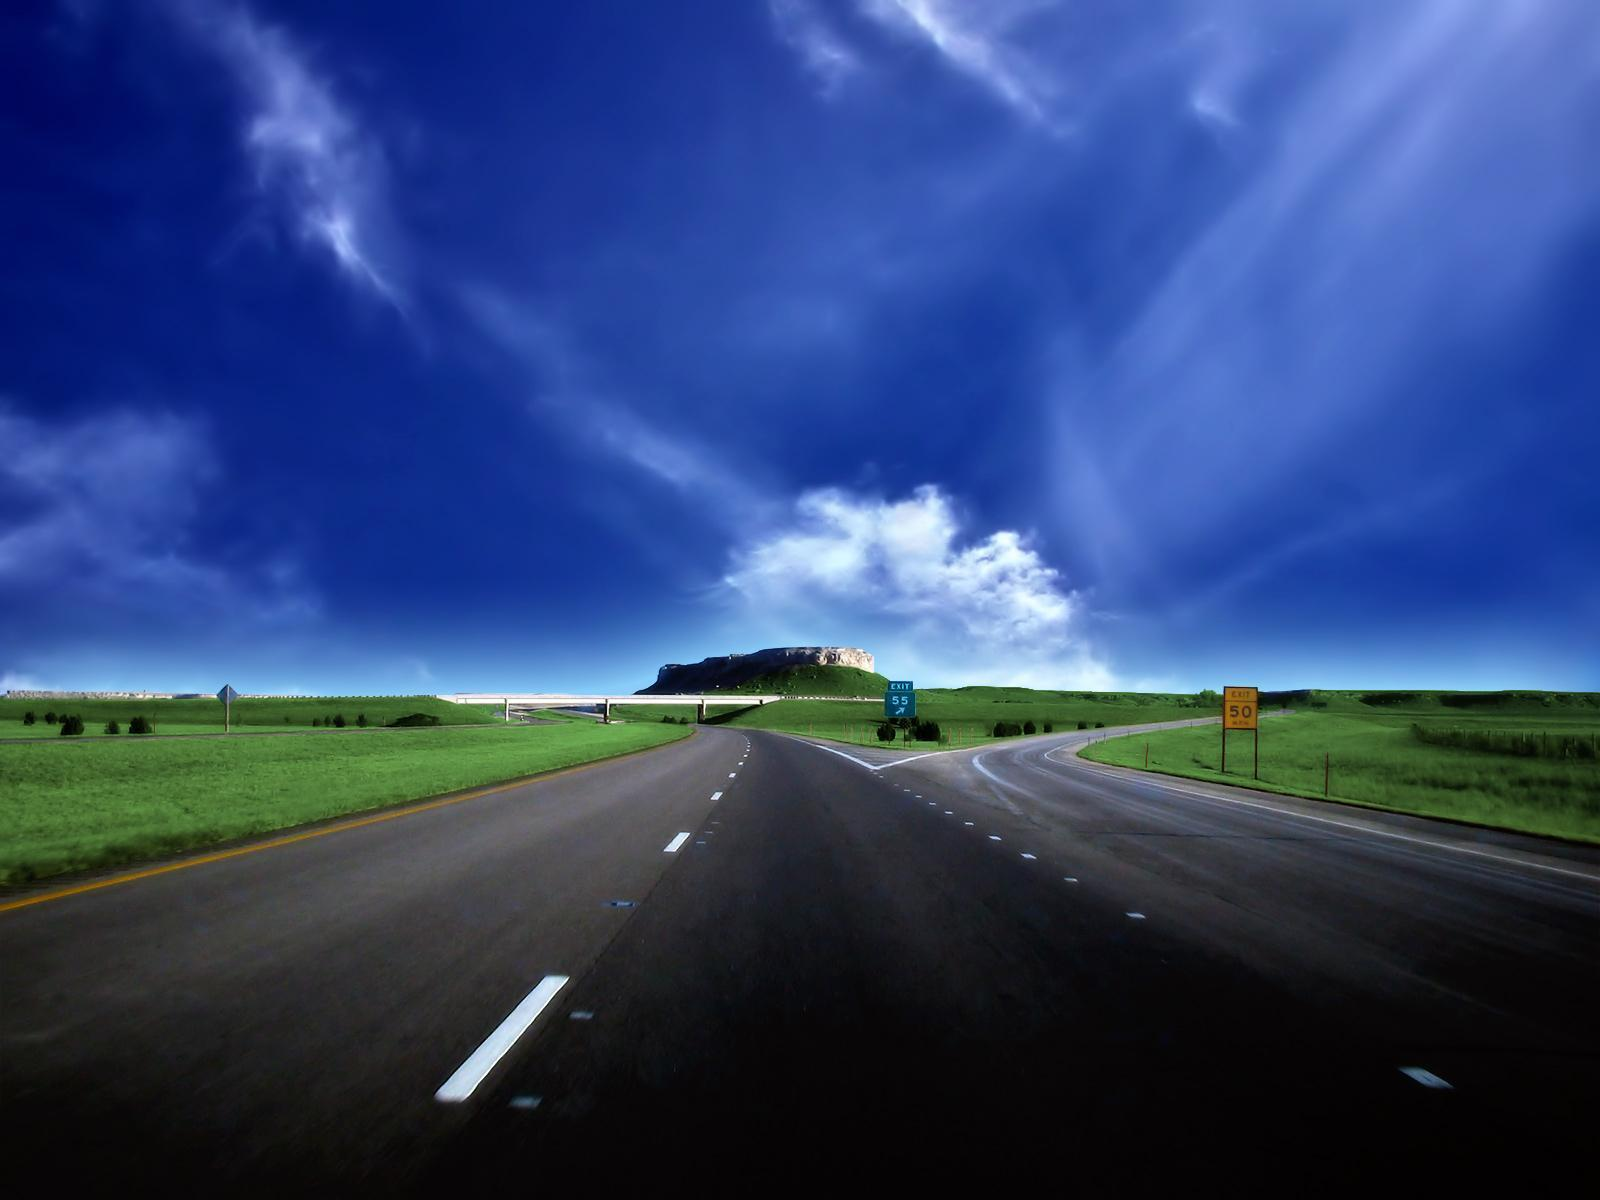 Download mobile wallpaper Landscape, Sky, Roads, Clouds for free.